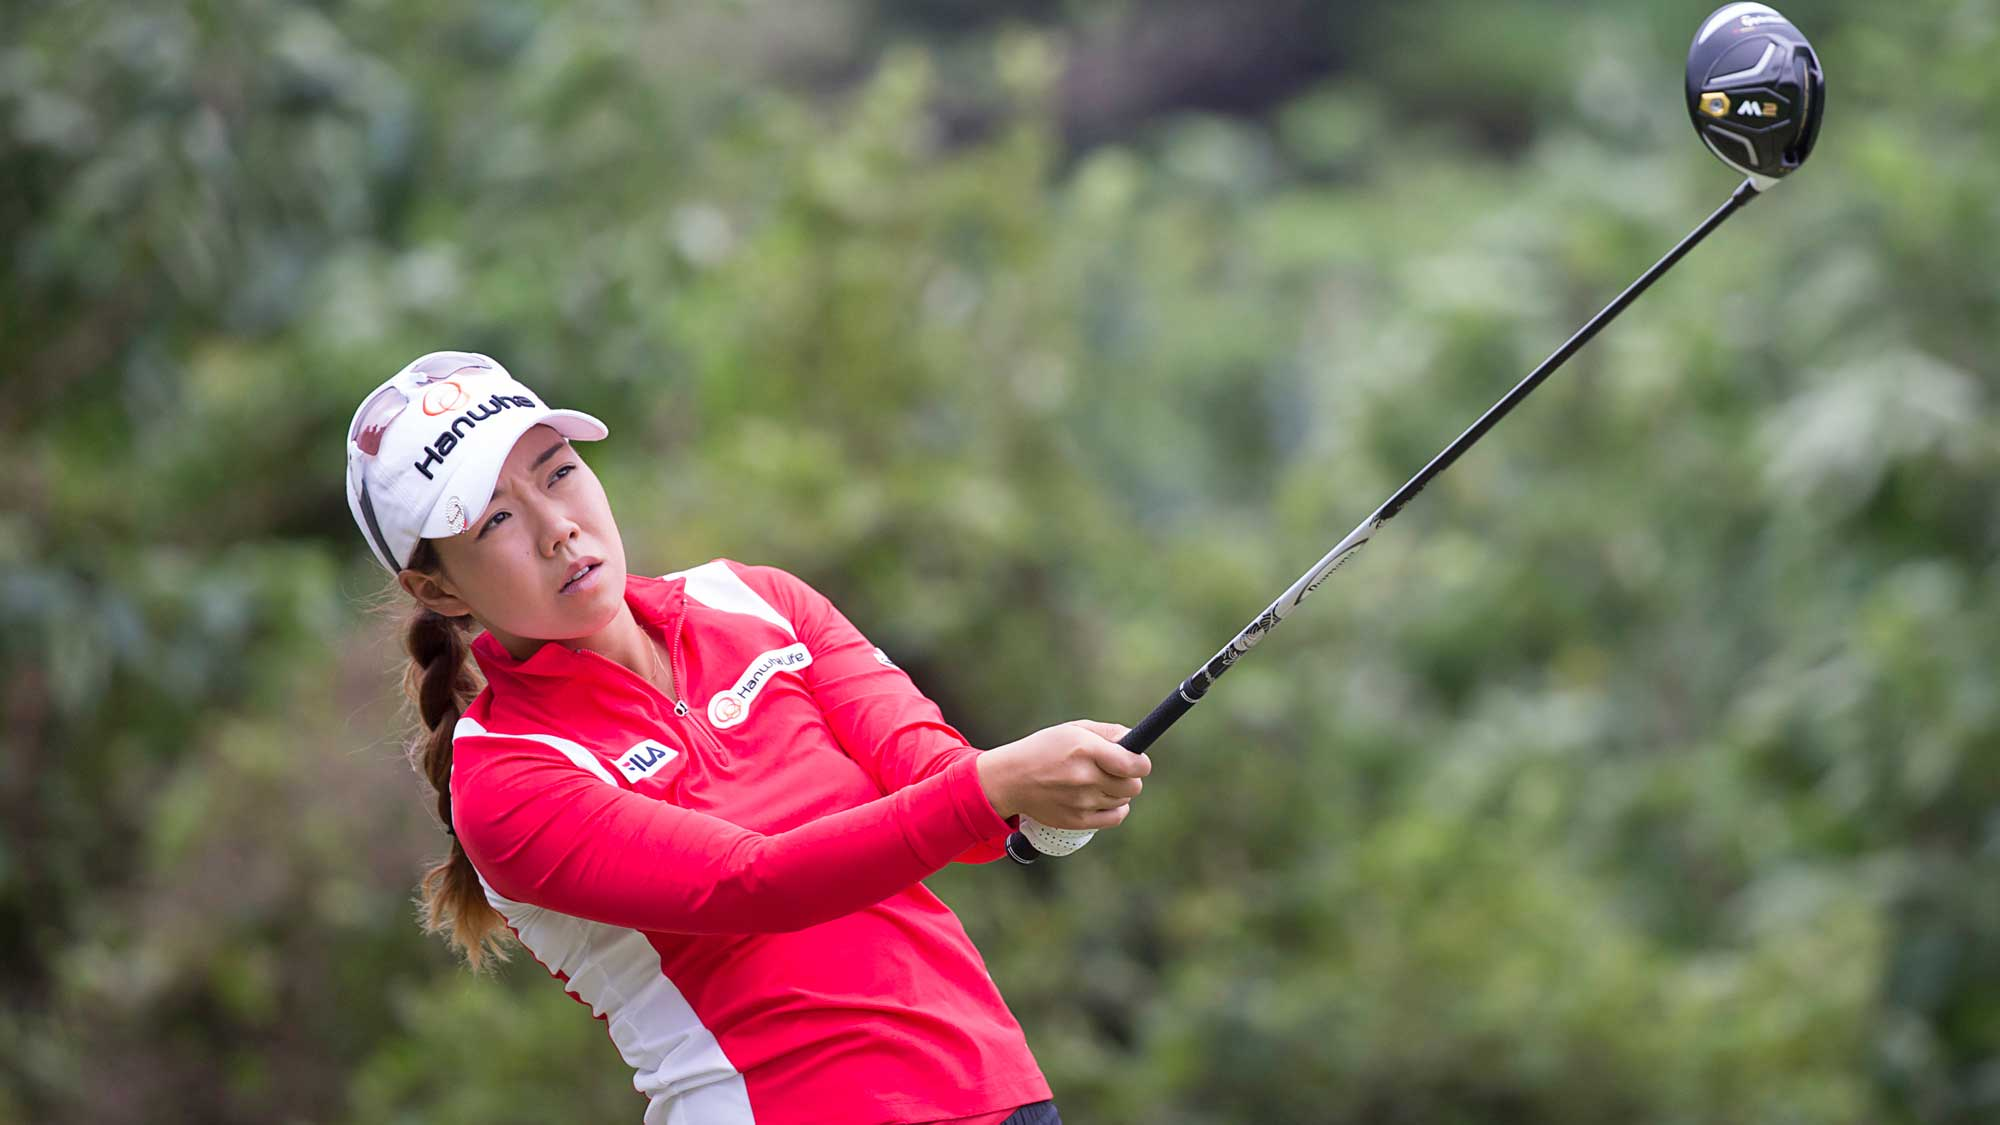 Kiwi golfer Lydia Ko off the pace in Taiwan LPGA event